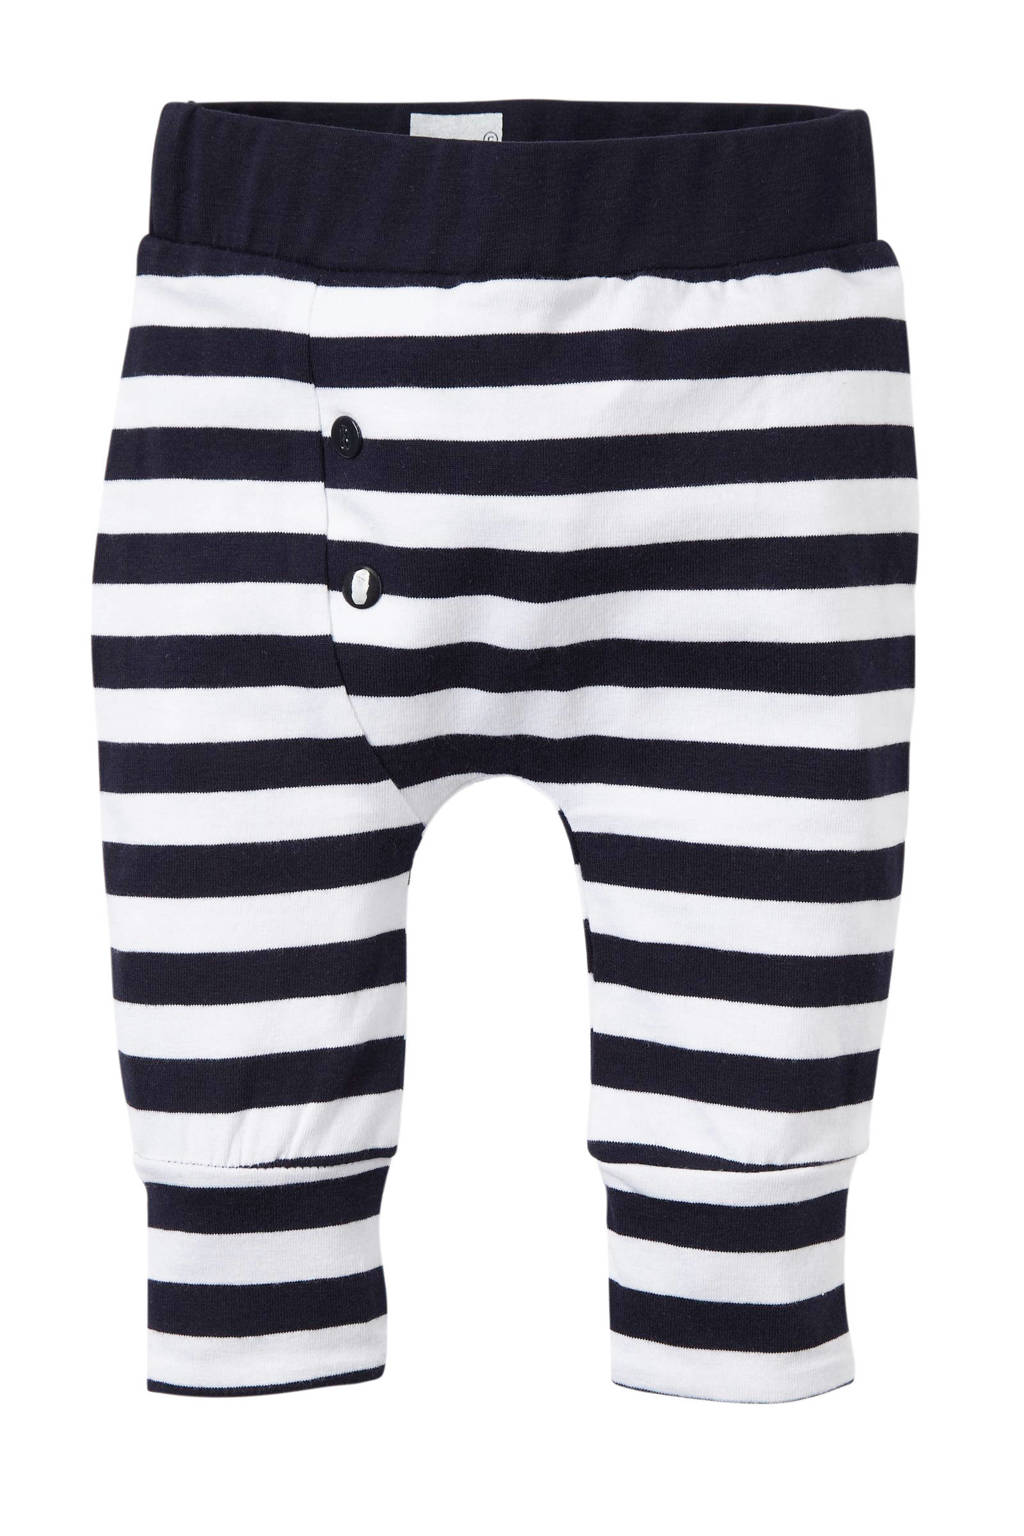 born to be famous. newborn baby broek, Marine/wit